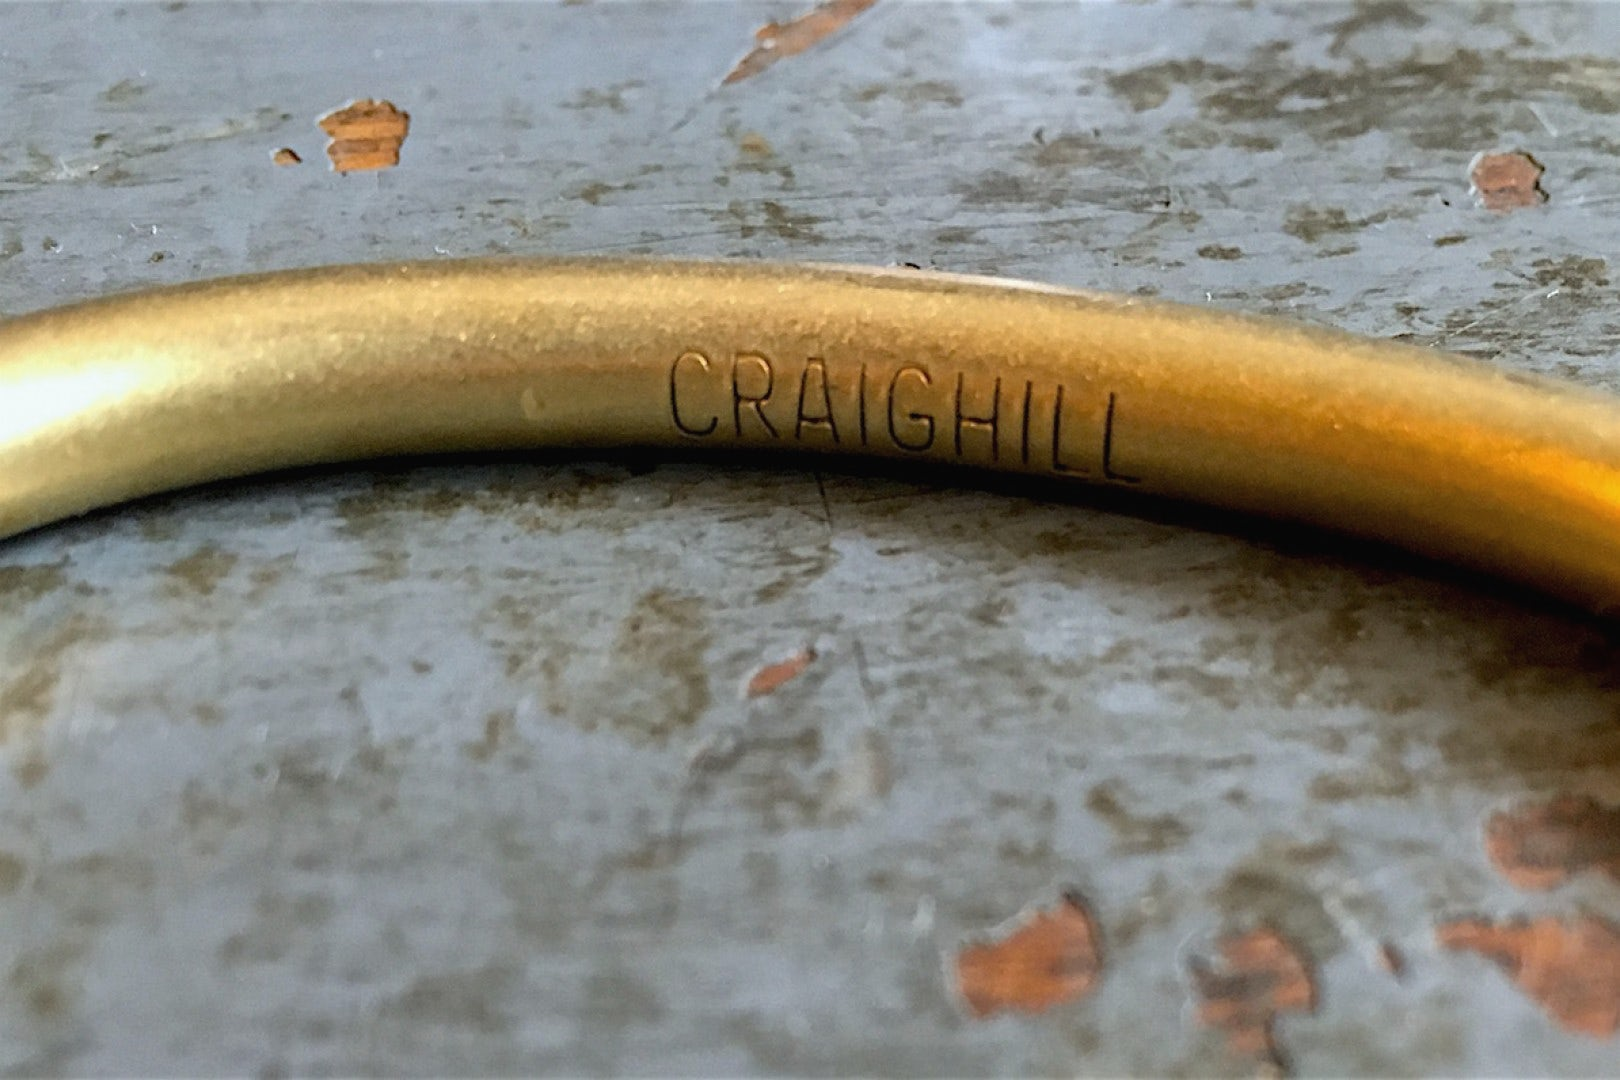 Craighill Uniform Round Cuff Brass